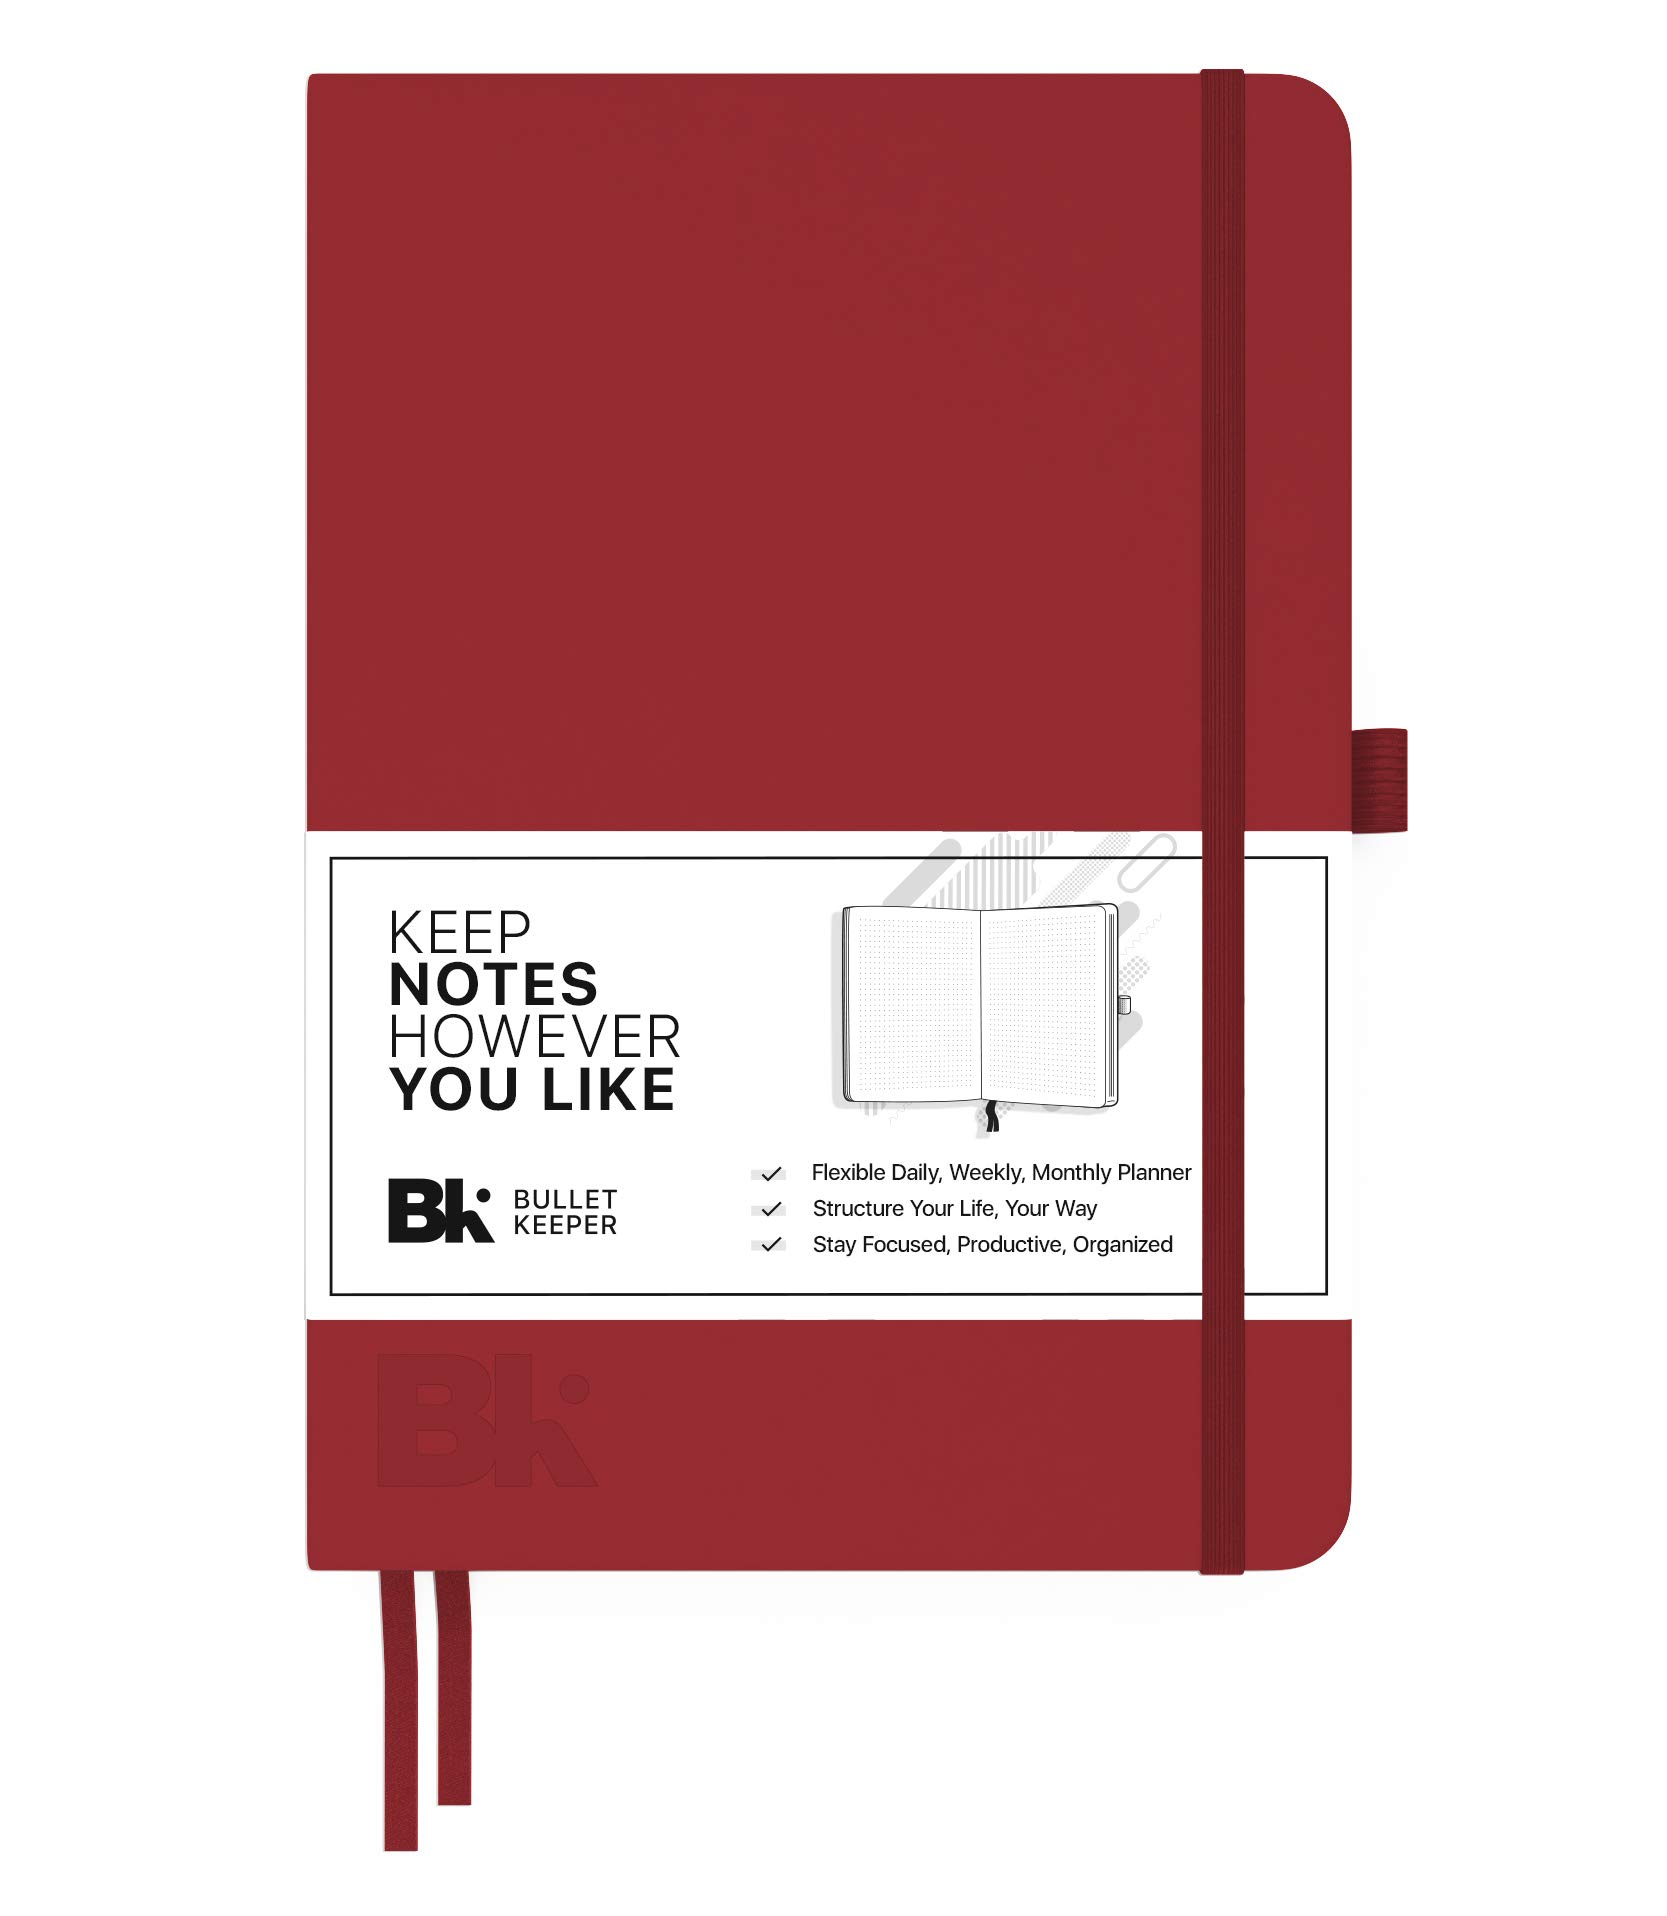 Bullet Keeper Undated Planner - Daily Weekly Monthly Planner. 2018 Agenda w Flexible Structure (5.8x8.3'') A5 Dot Grid Notebook Journal. Hardcover Red Leather w Elastic Closure. 52 Week Version